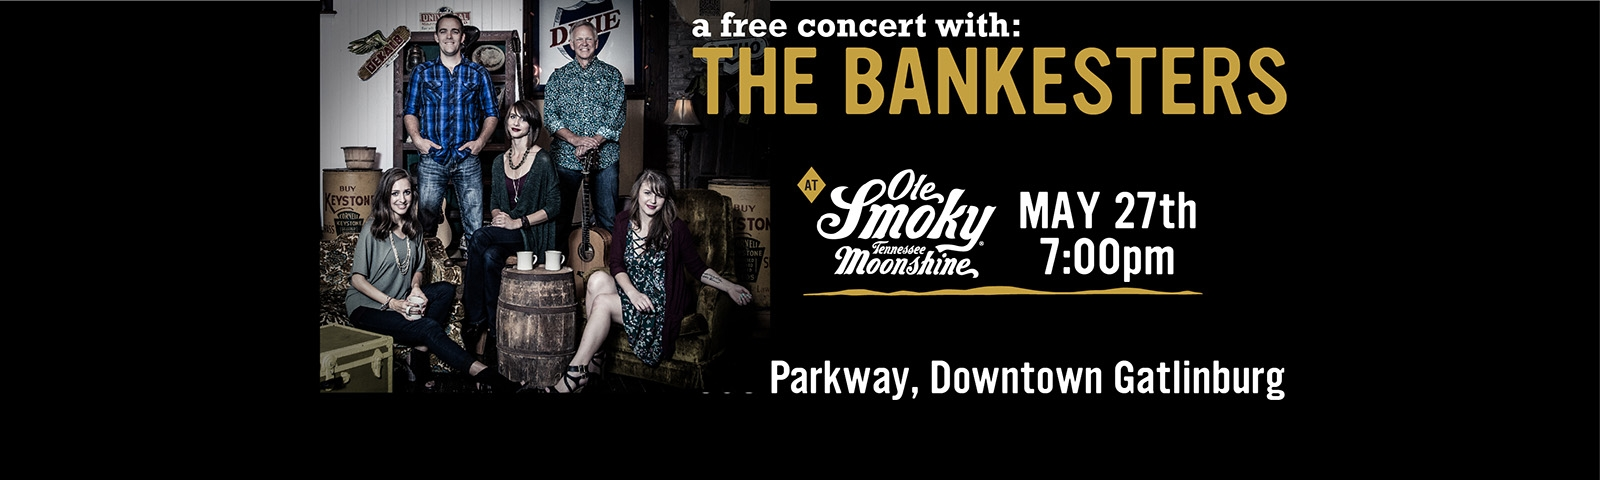 The Bankesters Concert